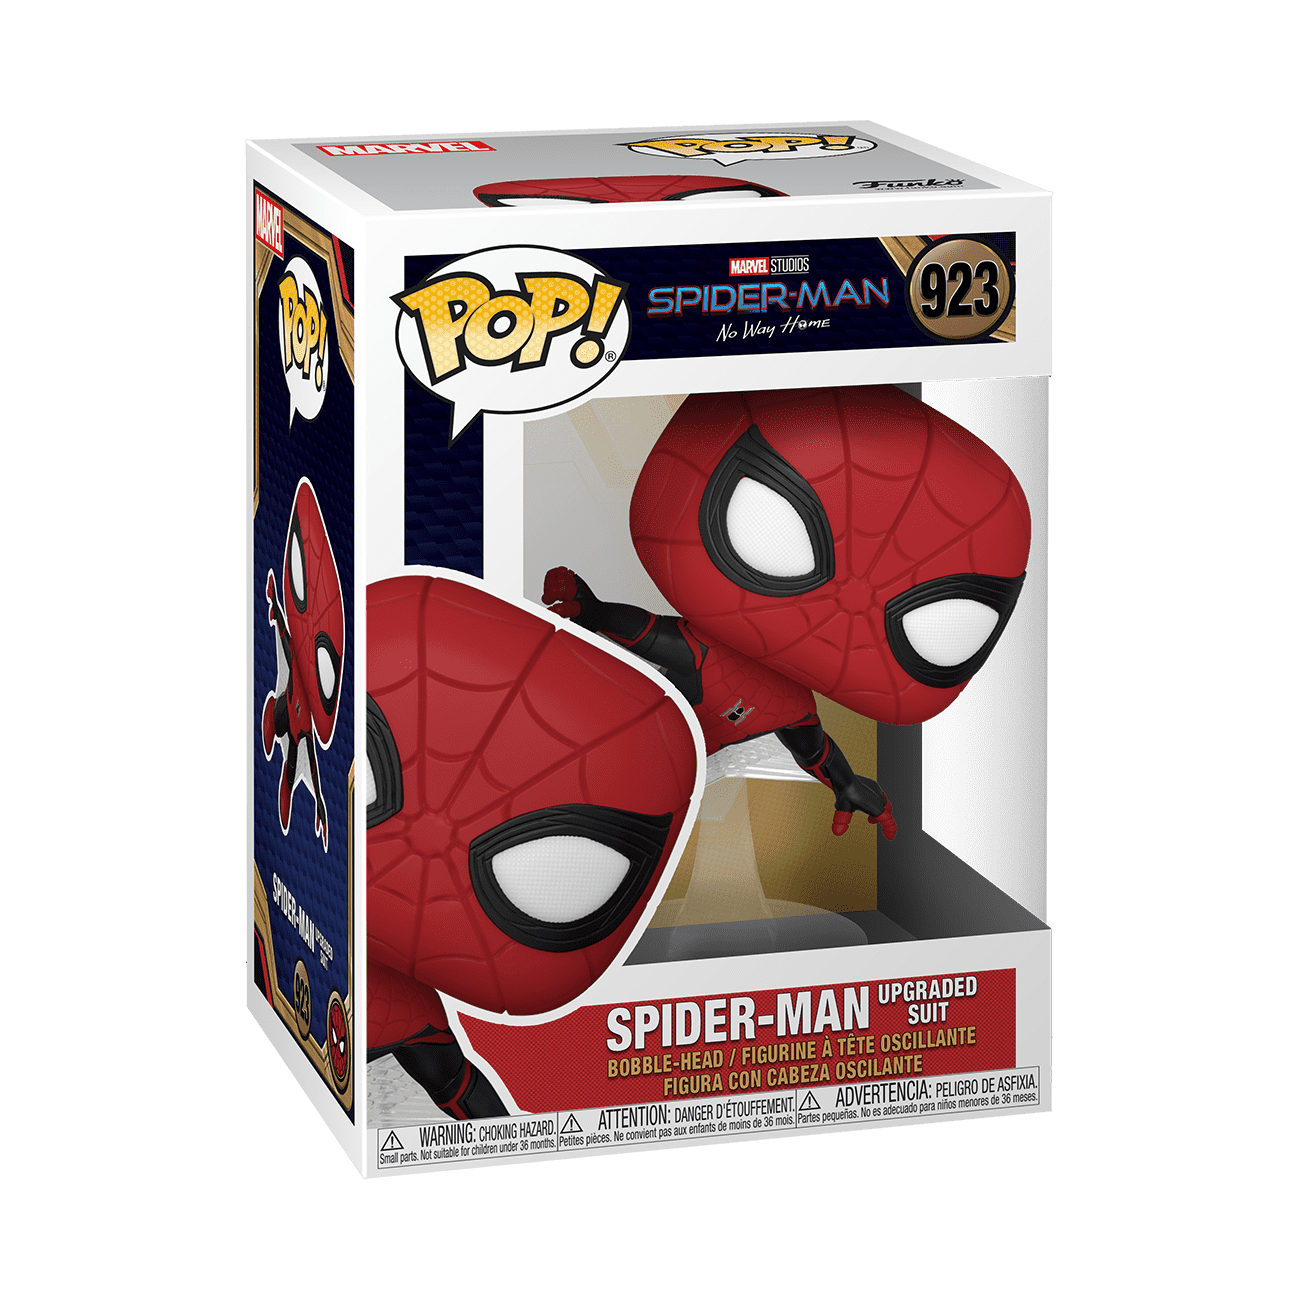 'Spider-Man: No Way Home' Funko - Upgraded Suit